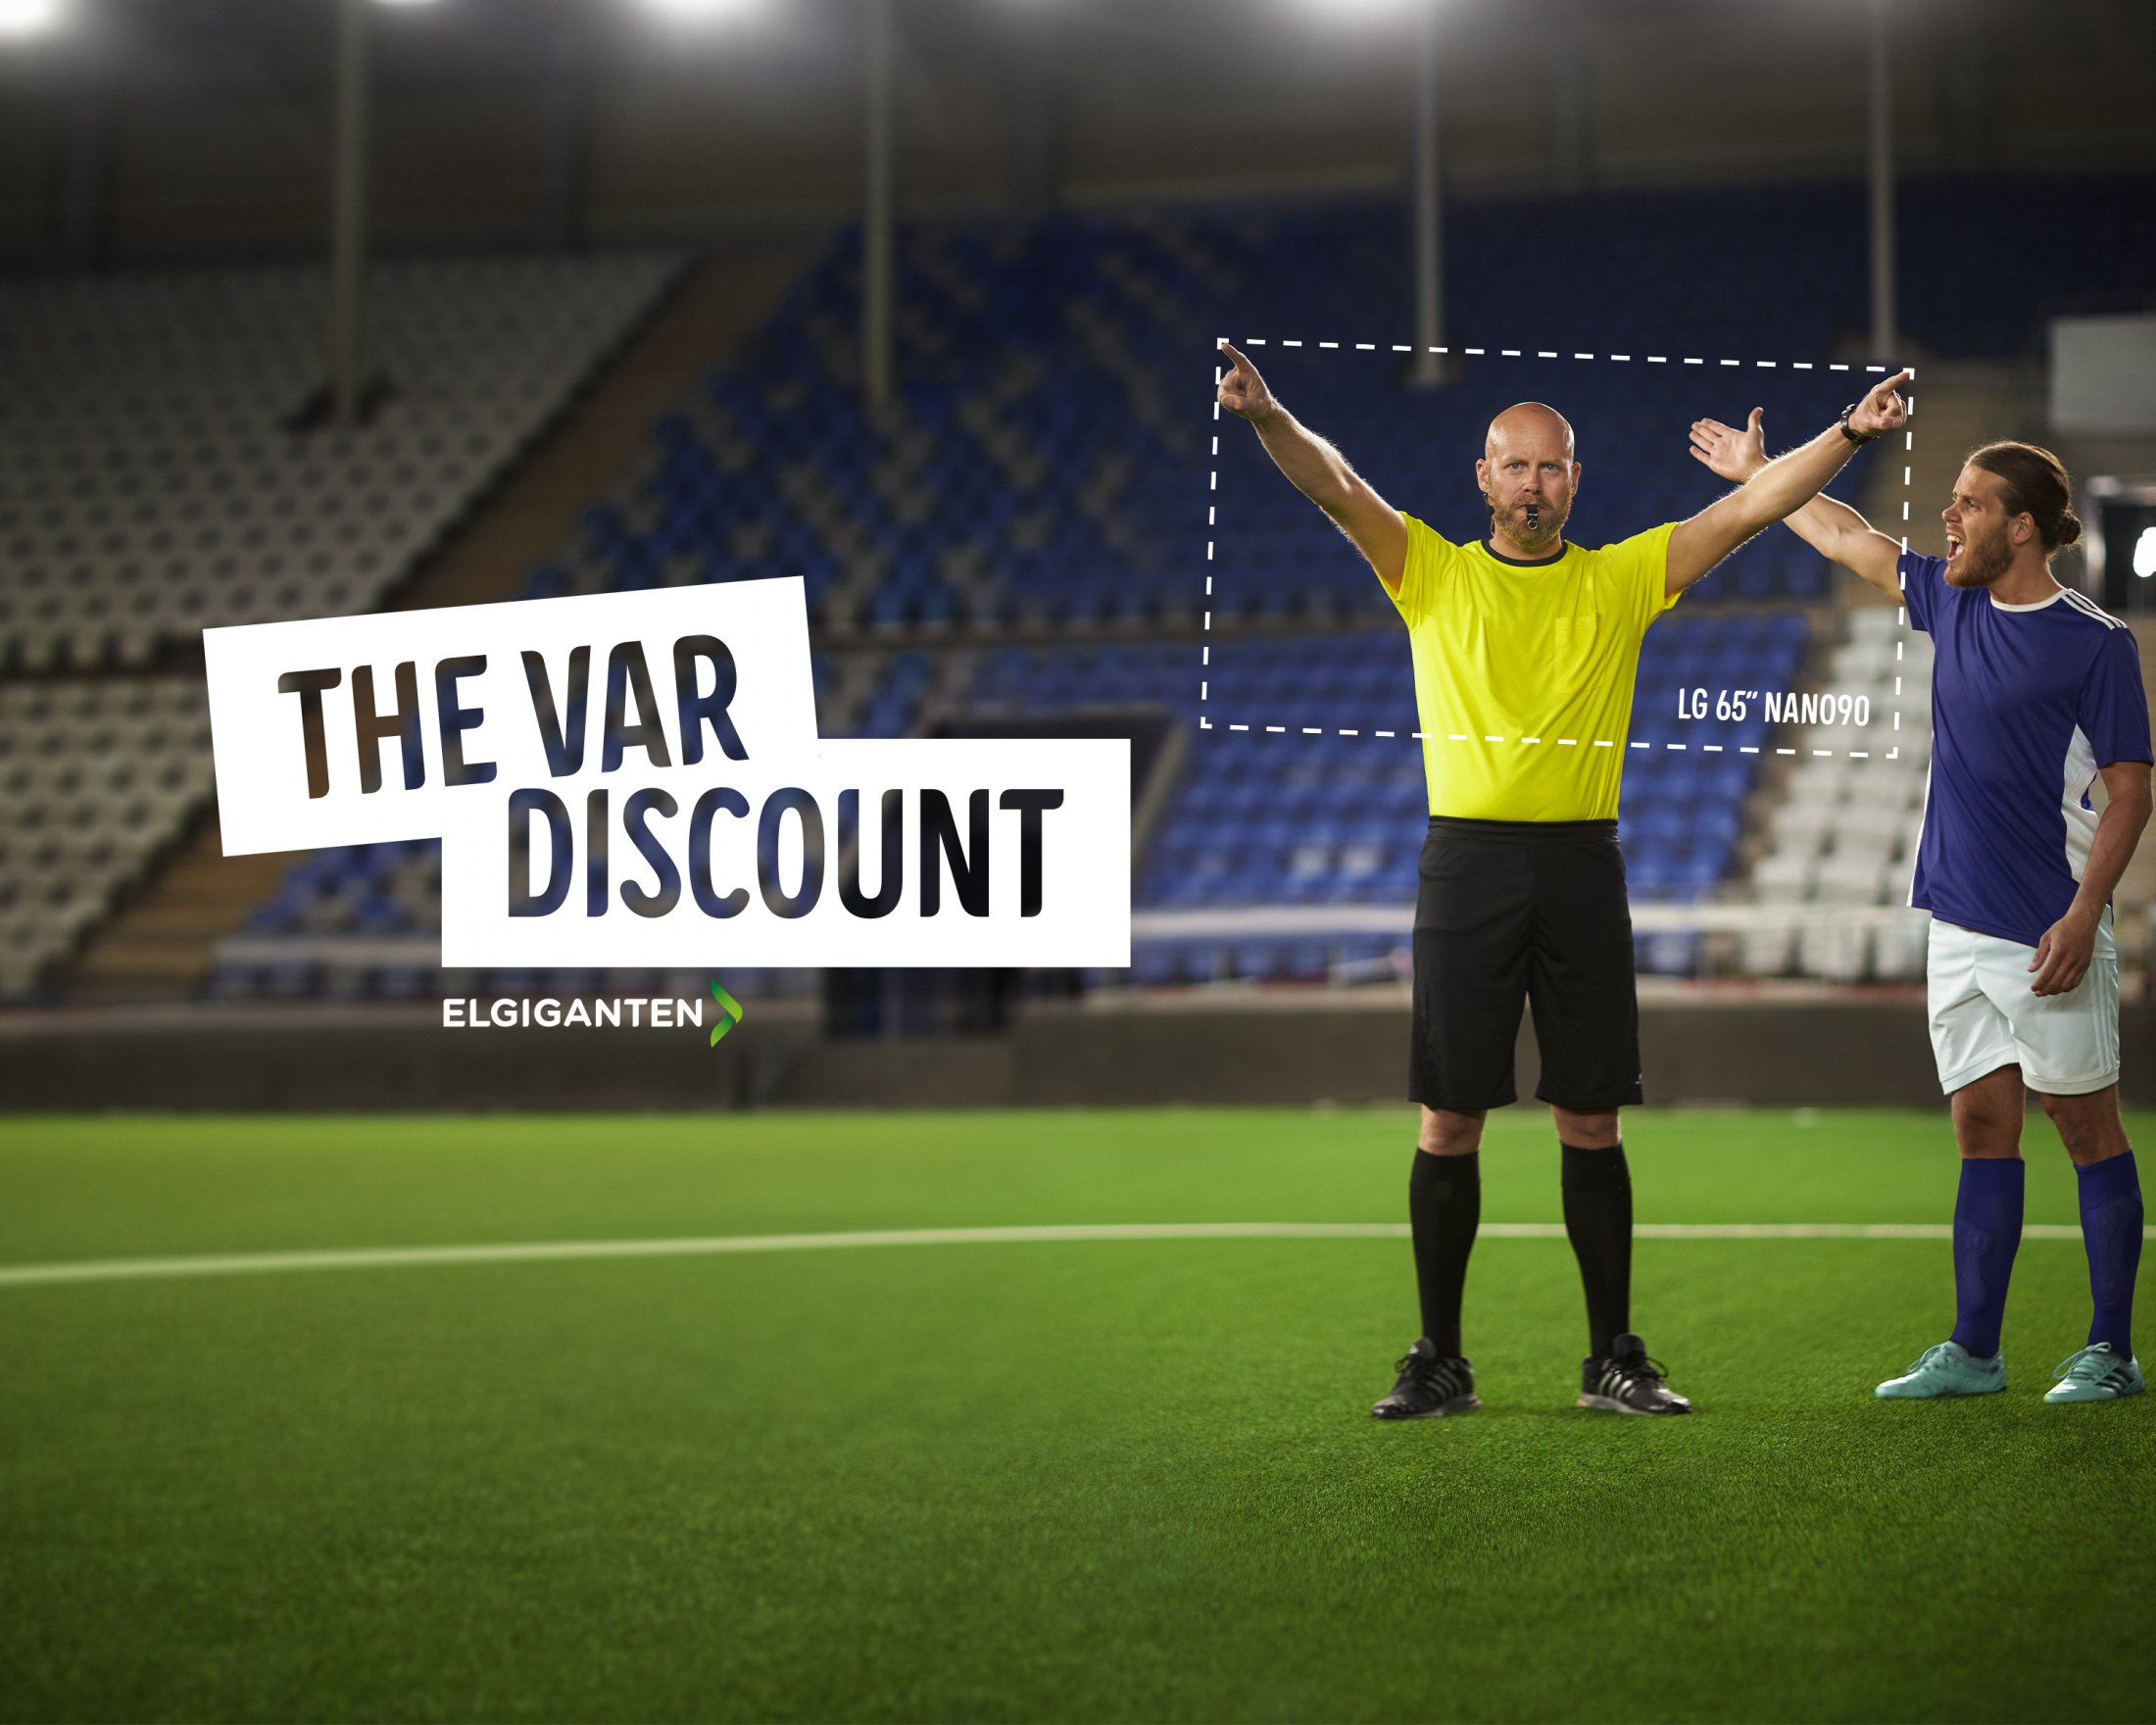 Thumbnail for The VAR Discount